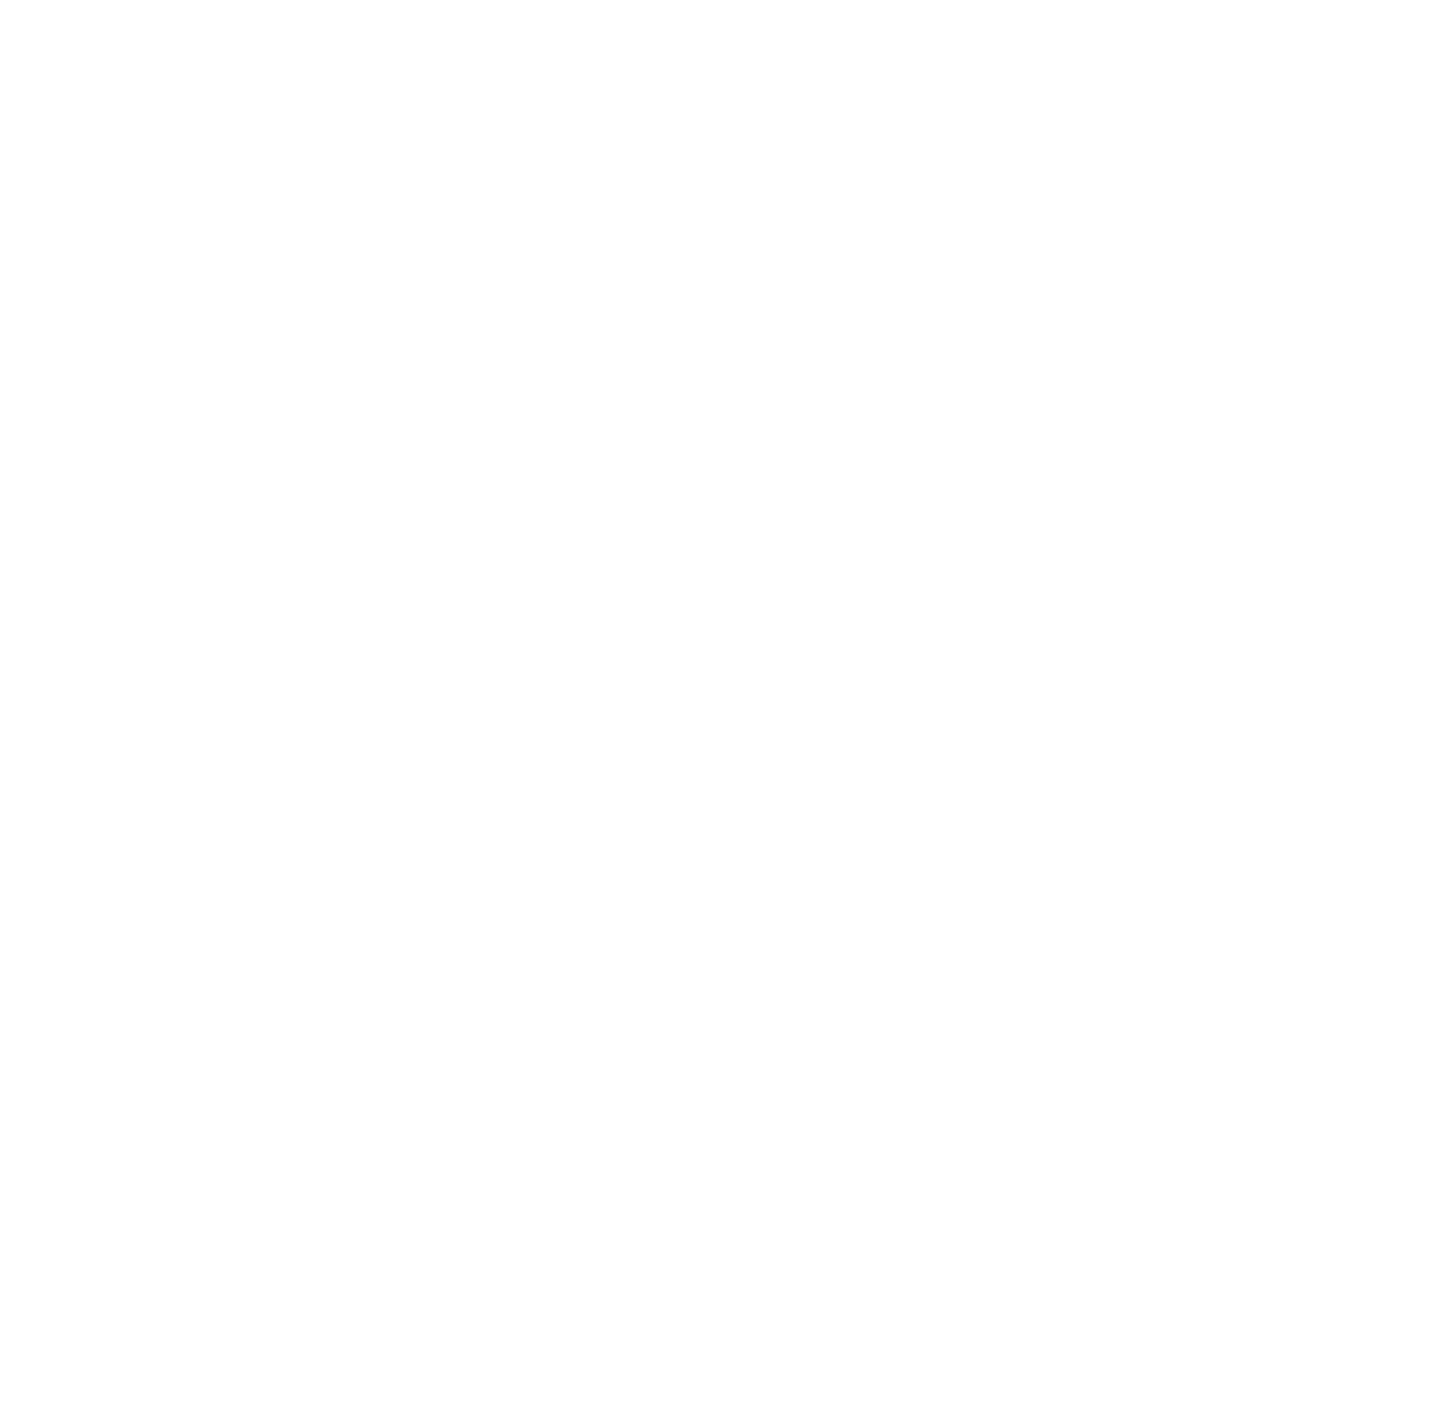 Creatif Production